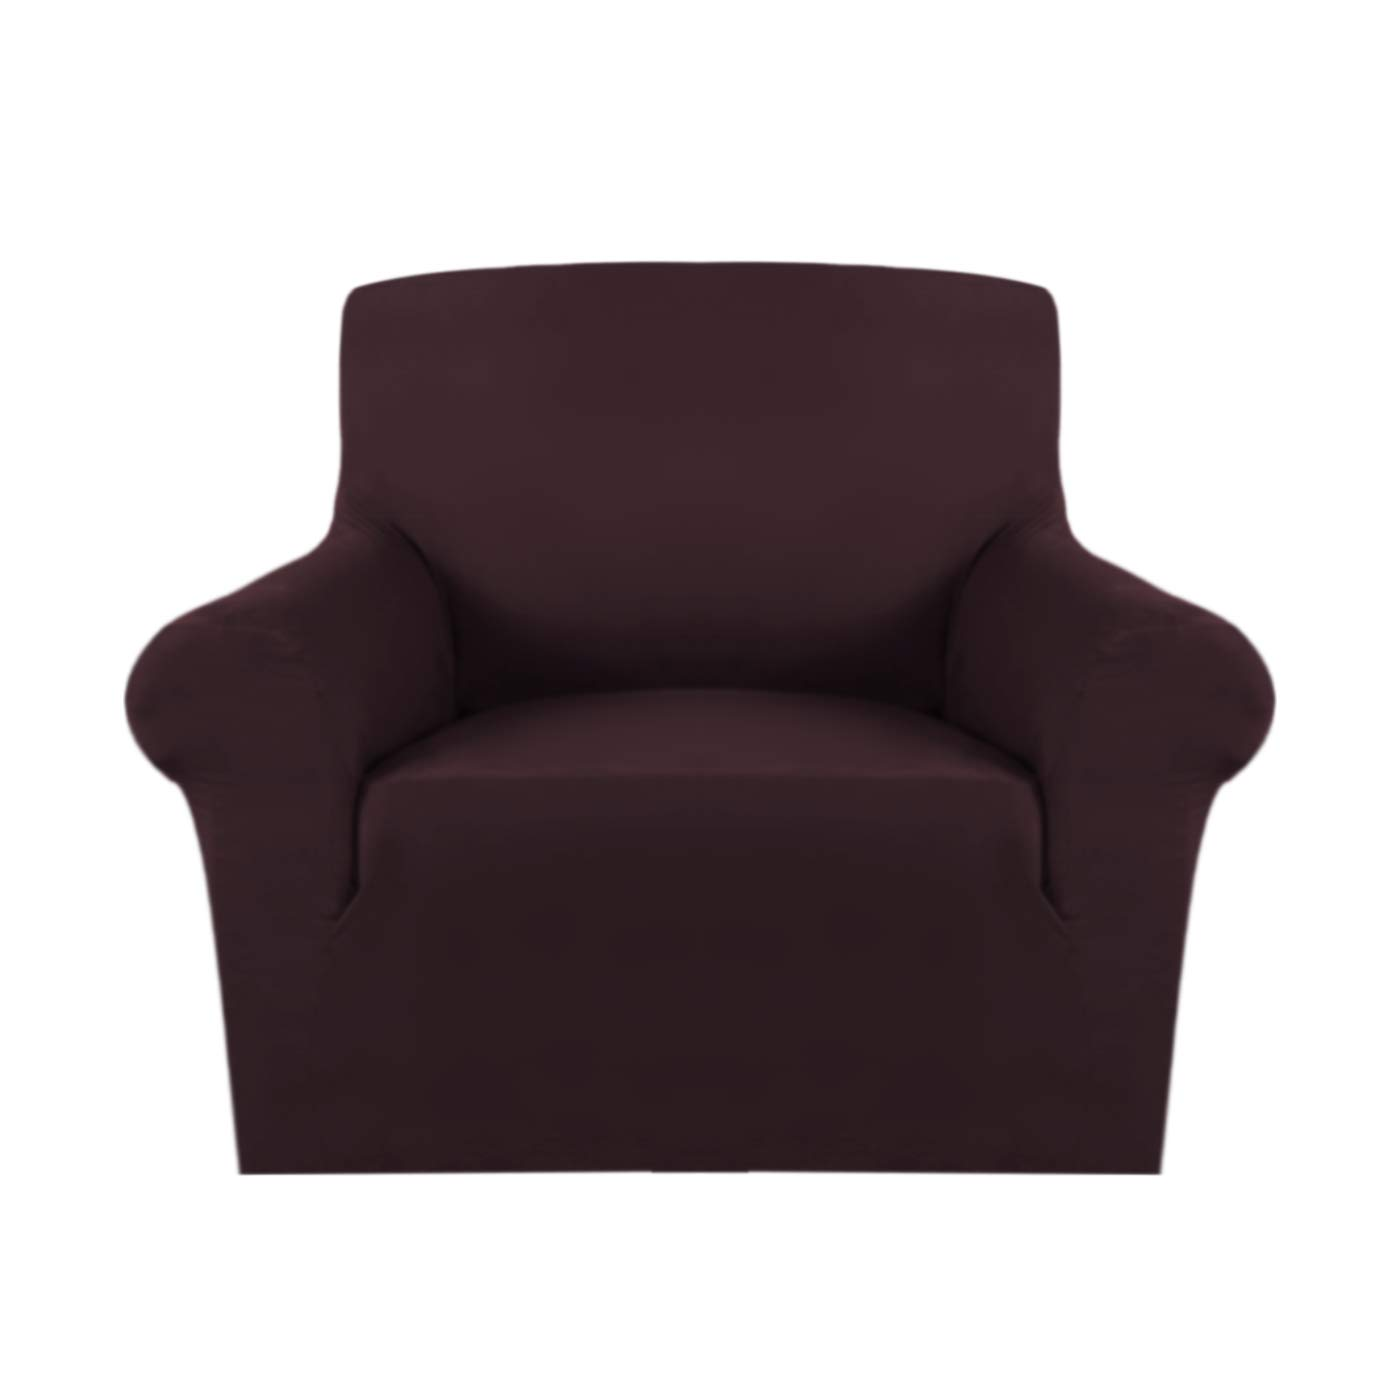 H.VERSAILTEX Super Stretch Stylish Furniture Cover/Protector Featuring Suede Fabric, Modern Plush Slipcover Machine Washable/Skid Resistance (One Seater Chair, Brown)